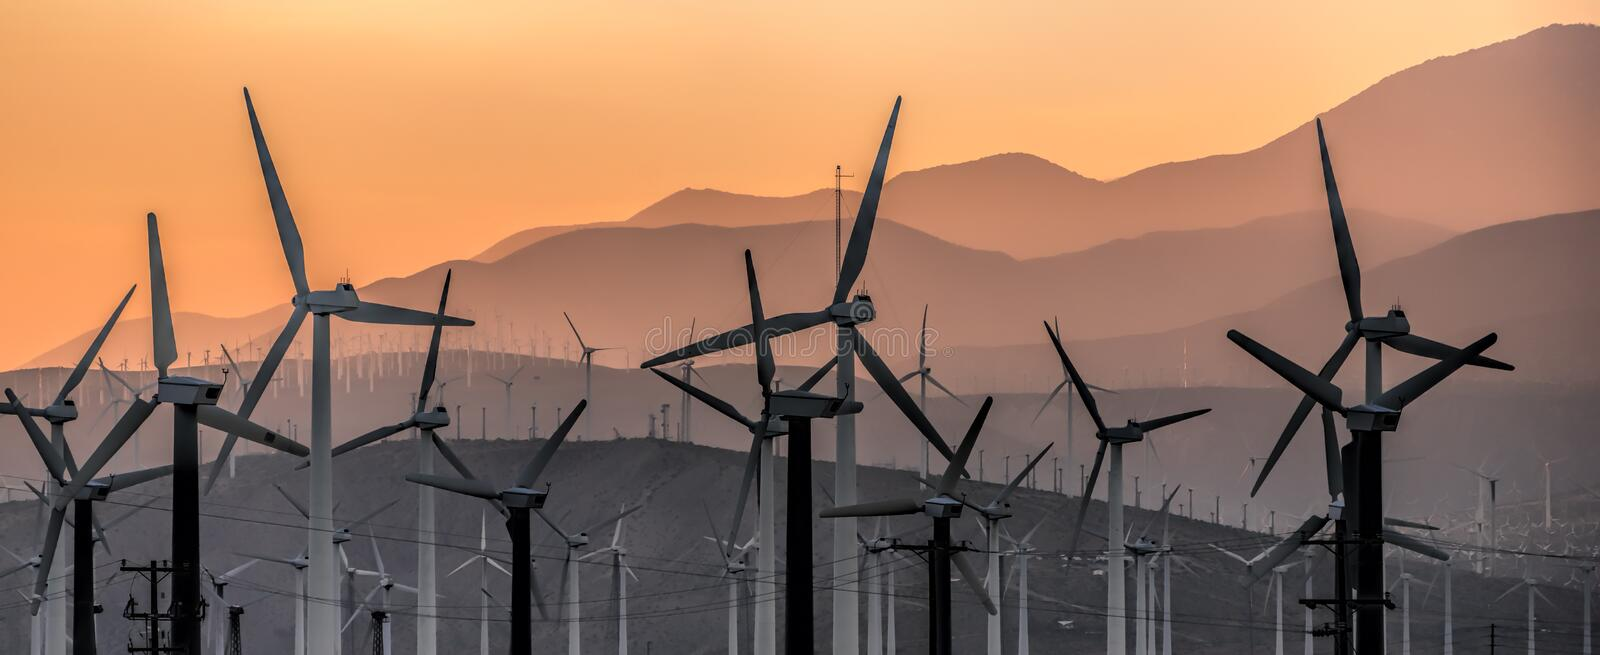 Windmills III royalty free stock image